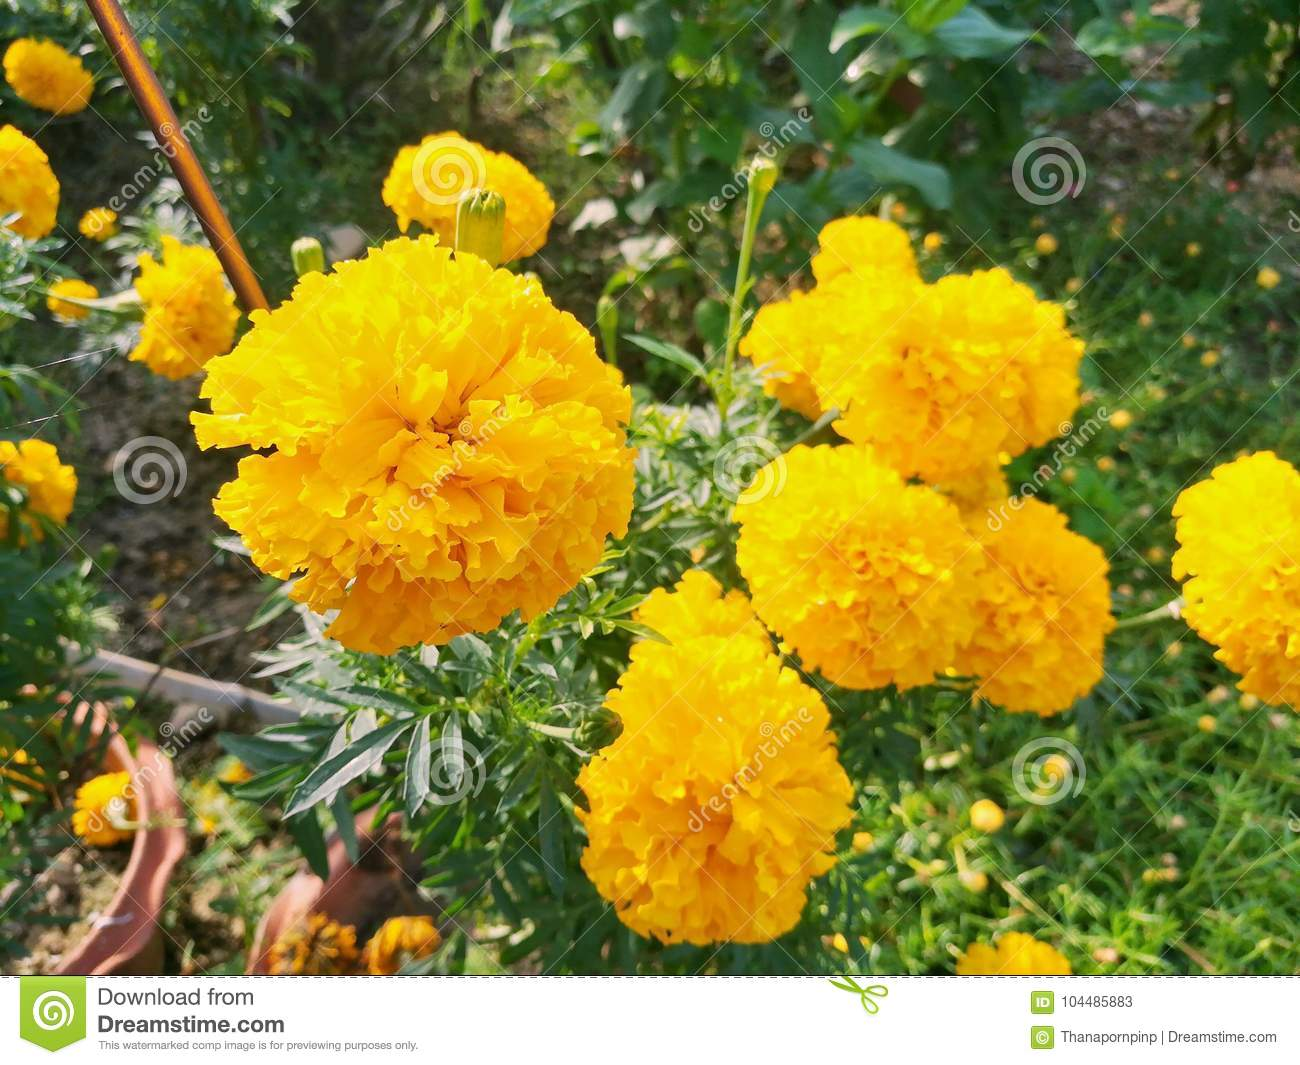 Cluster of marigold in the garden beautiful bright yellow flowers download cluster of marigold in the garden beautiful bright yellow flowers stock image mightylinksfo